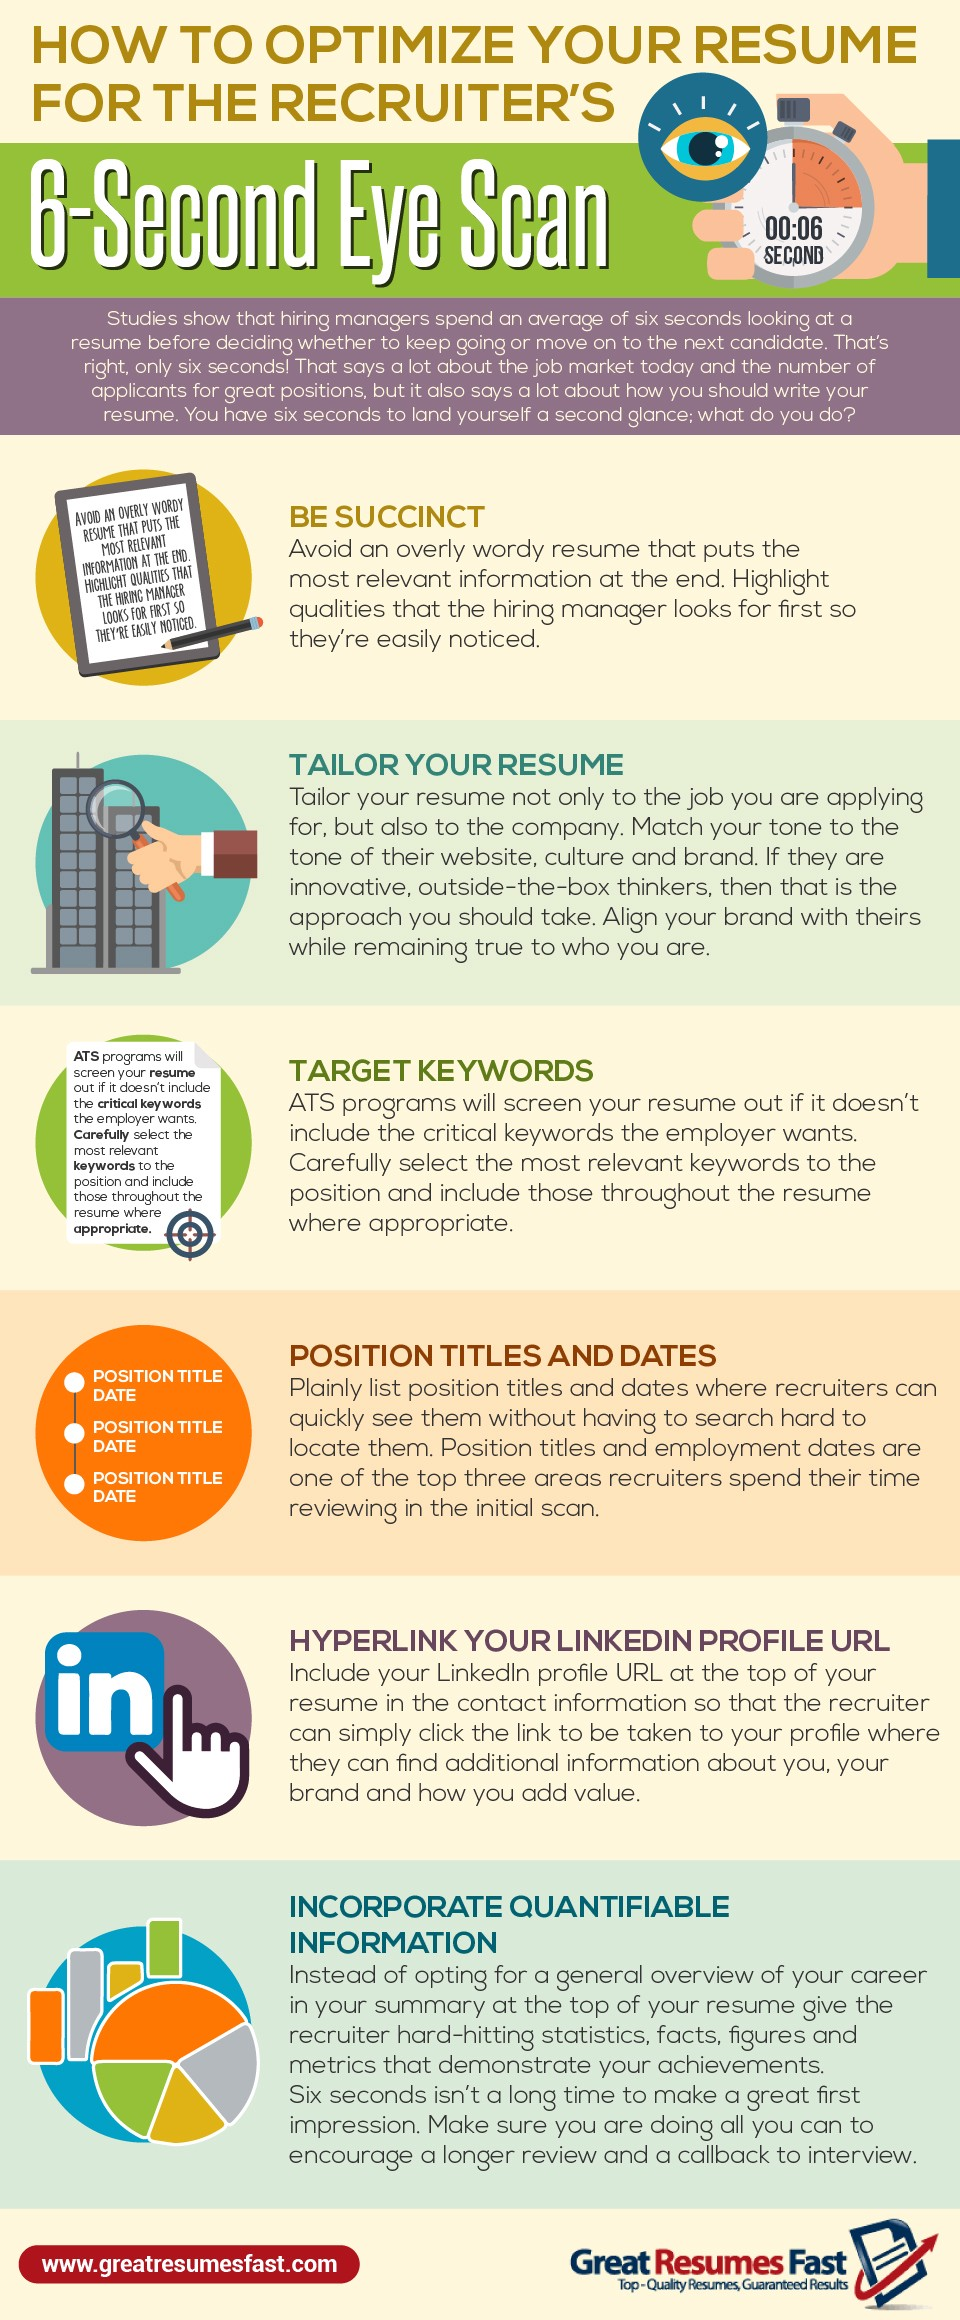 Infographic How To Optimize Your Resume For The Recruiter